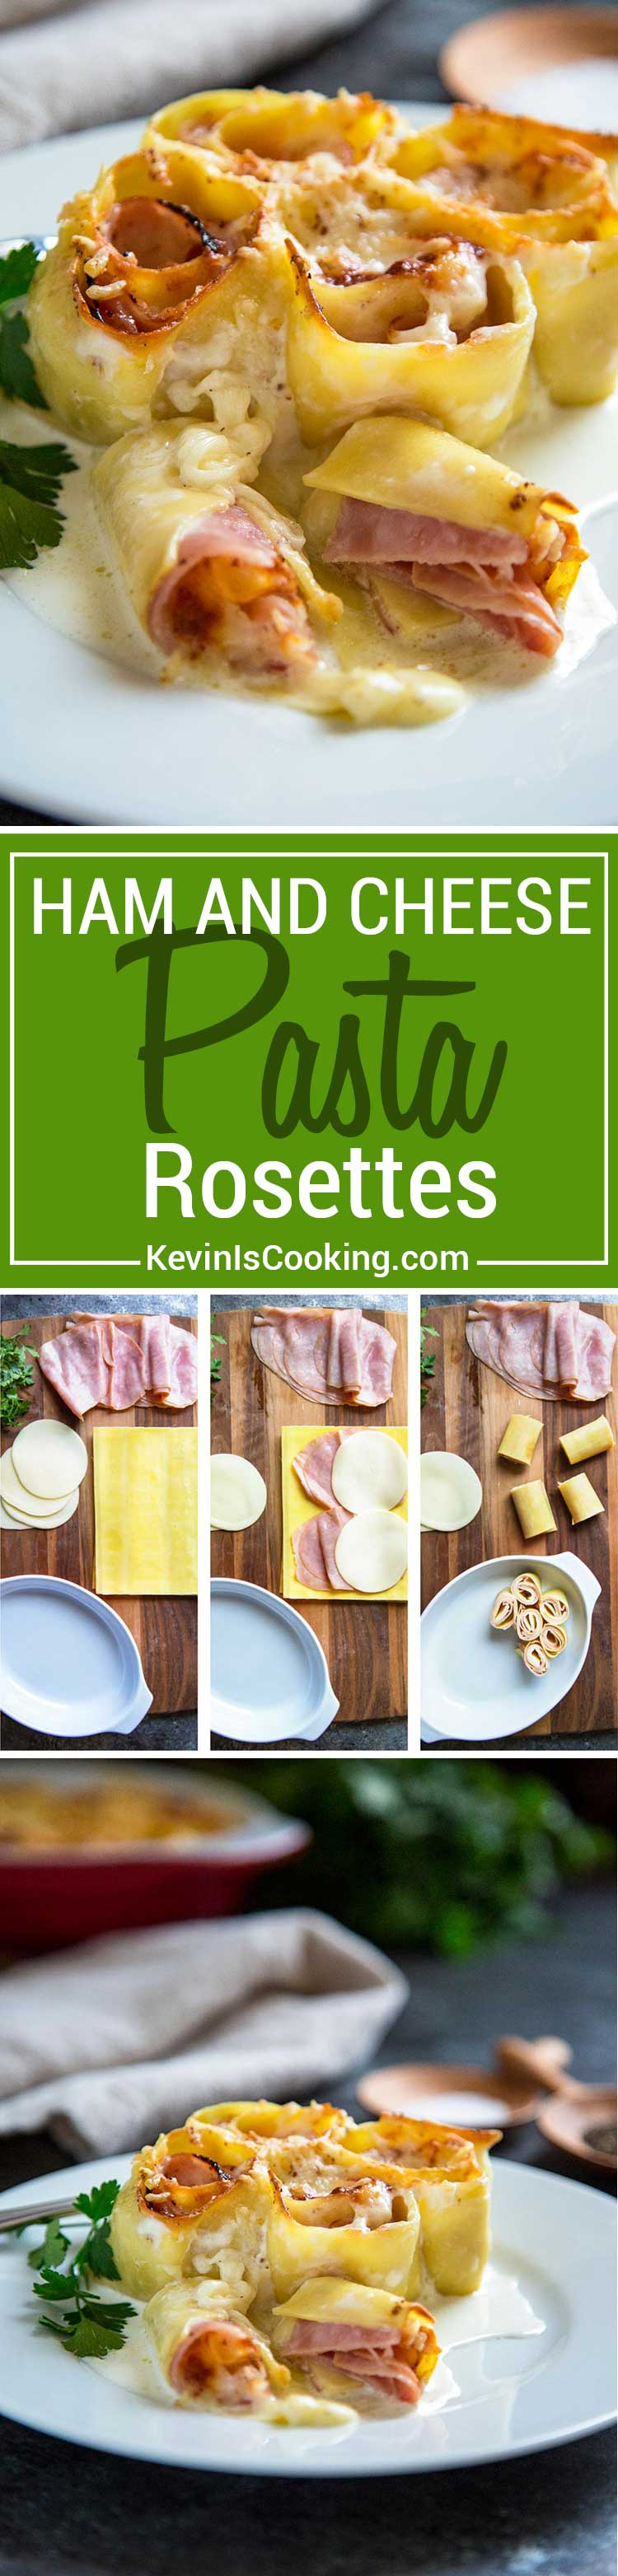 Ham and Cheese Pasta Rosettes start with fresh pasta sheets, sliced ham, fontina or provolone cheese. Roll up, cover with with cream and nutmeg and bake!